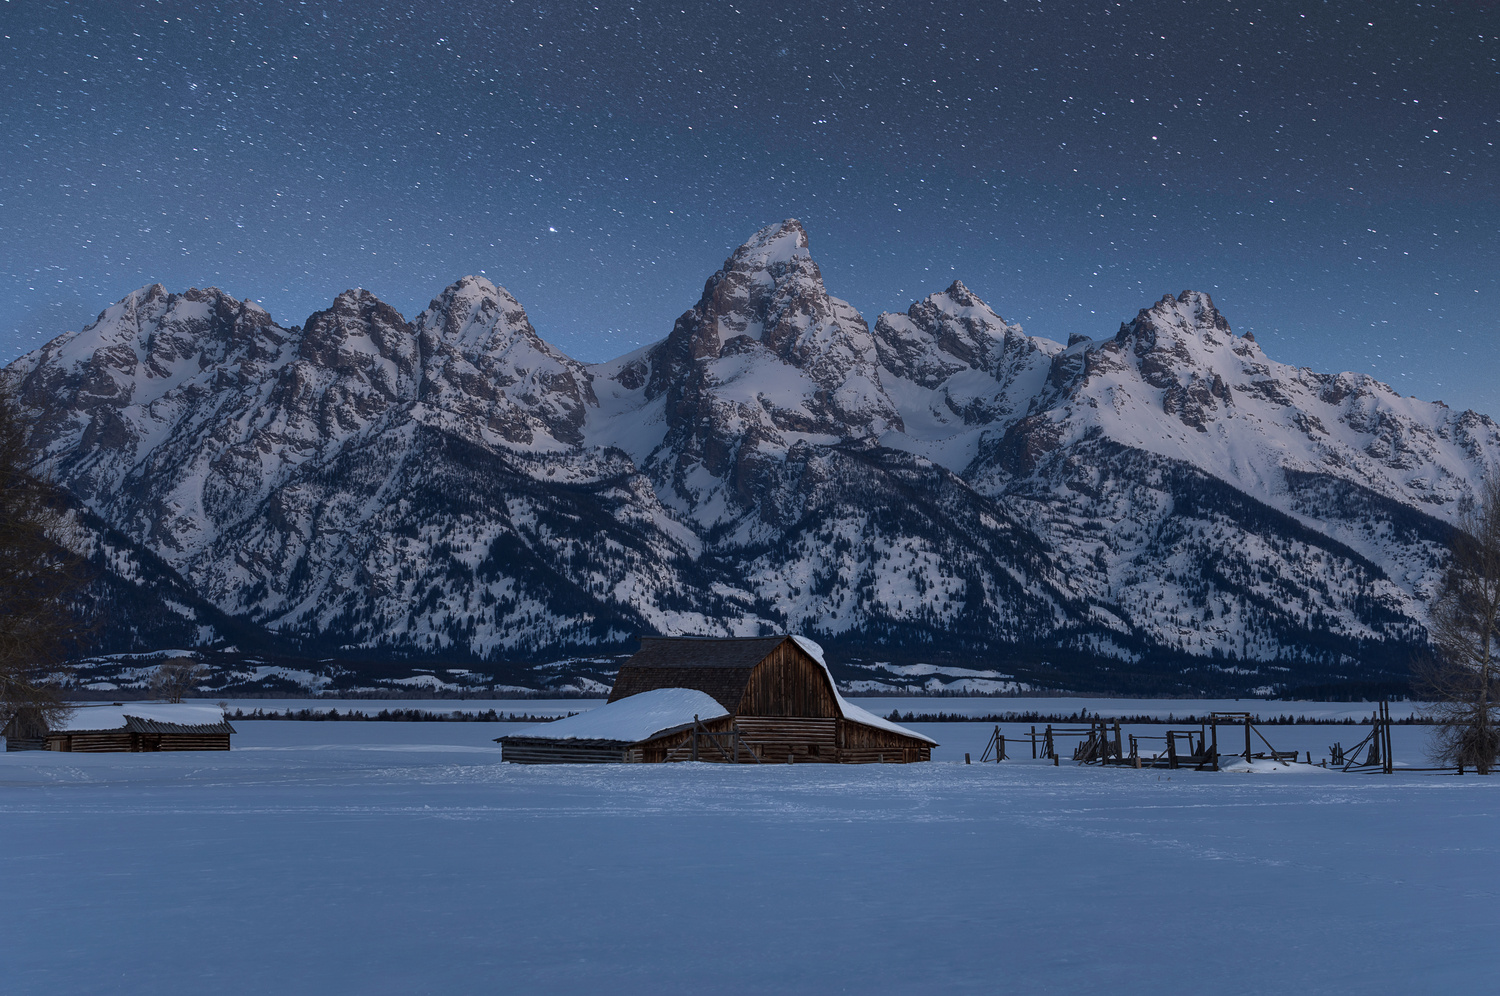 Tetons Under the Stars by Nick Souvall